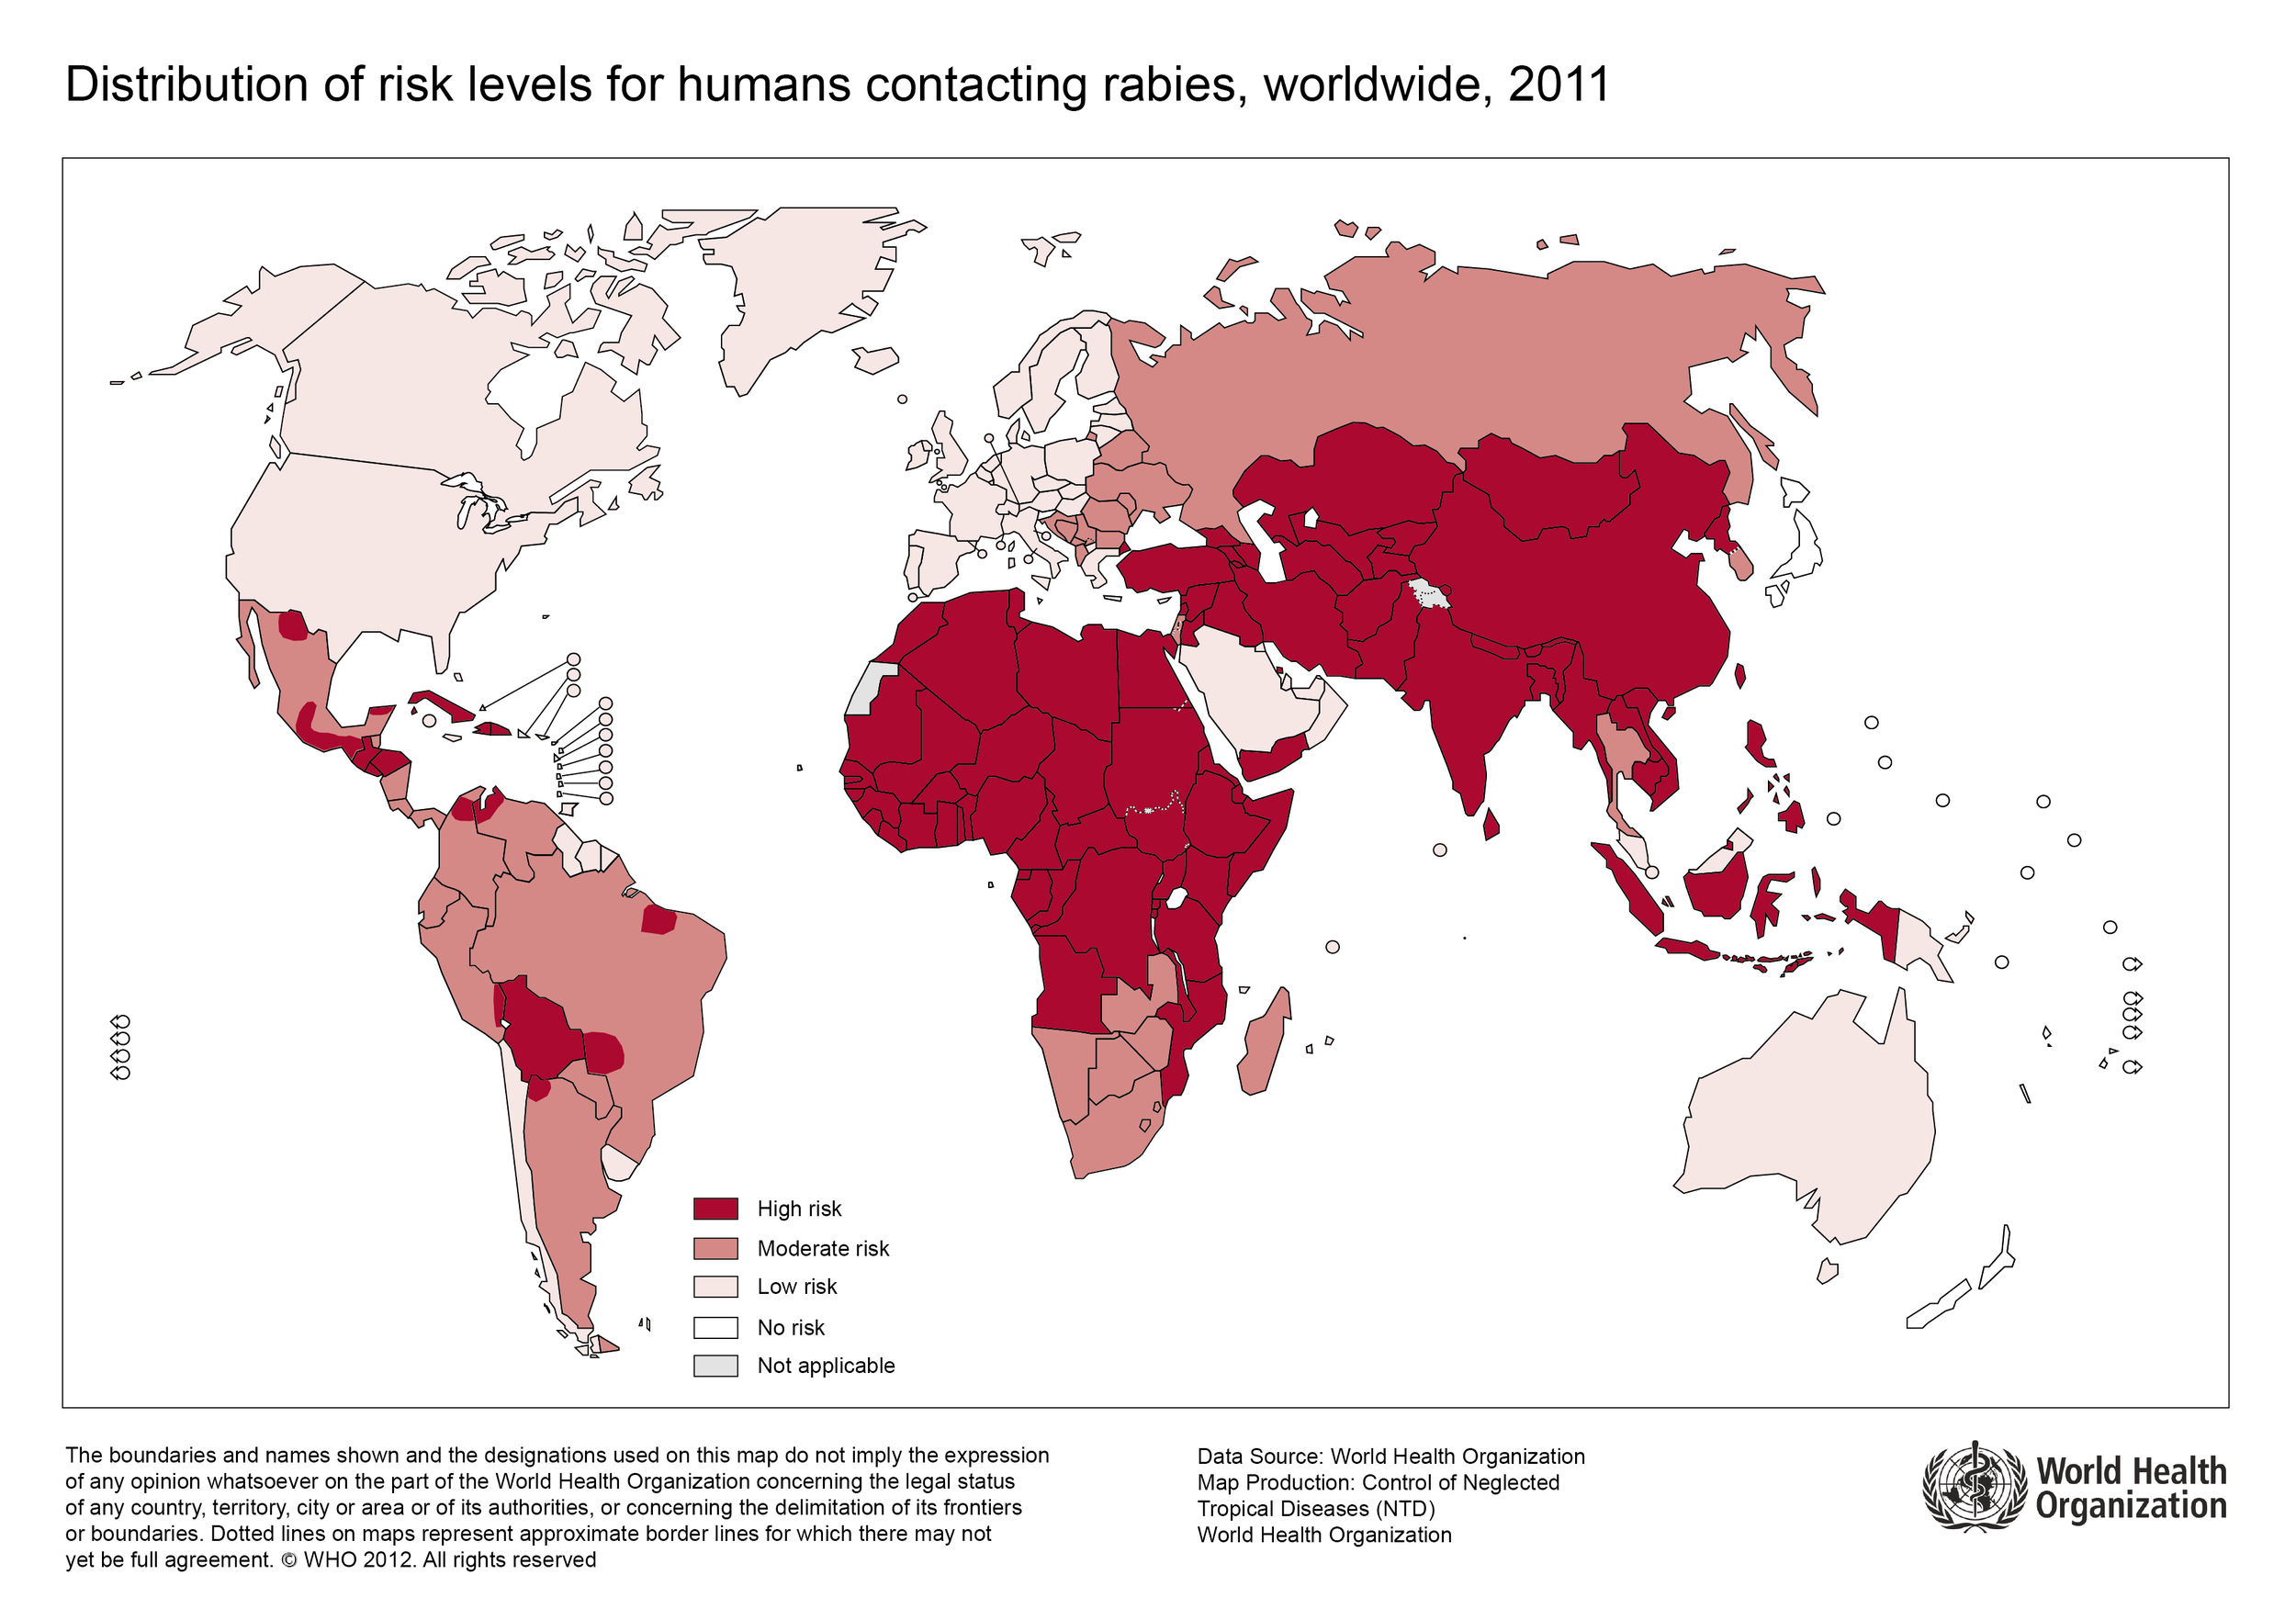 Figure 1.  Worldwide map of rabies indicating level of risk by country, 2011. Courtesy of the World Health Organization.  http://www.who.int/rabies/Global_distribution_risk_humans_contracting_rabies_2011.png?ua=1